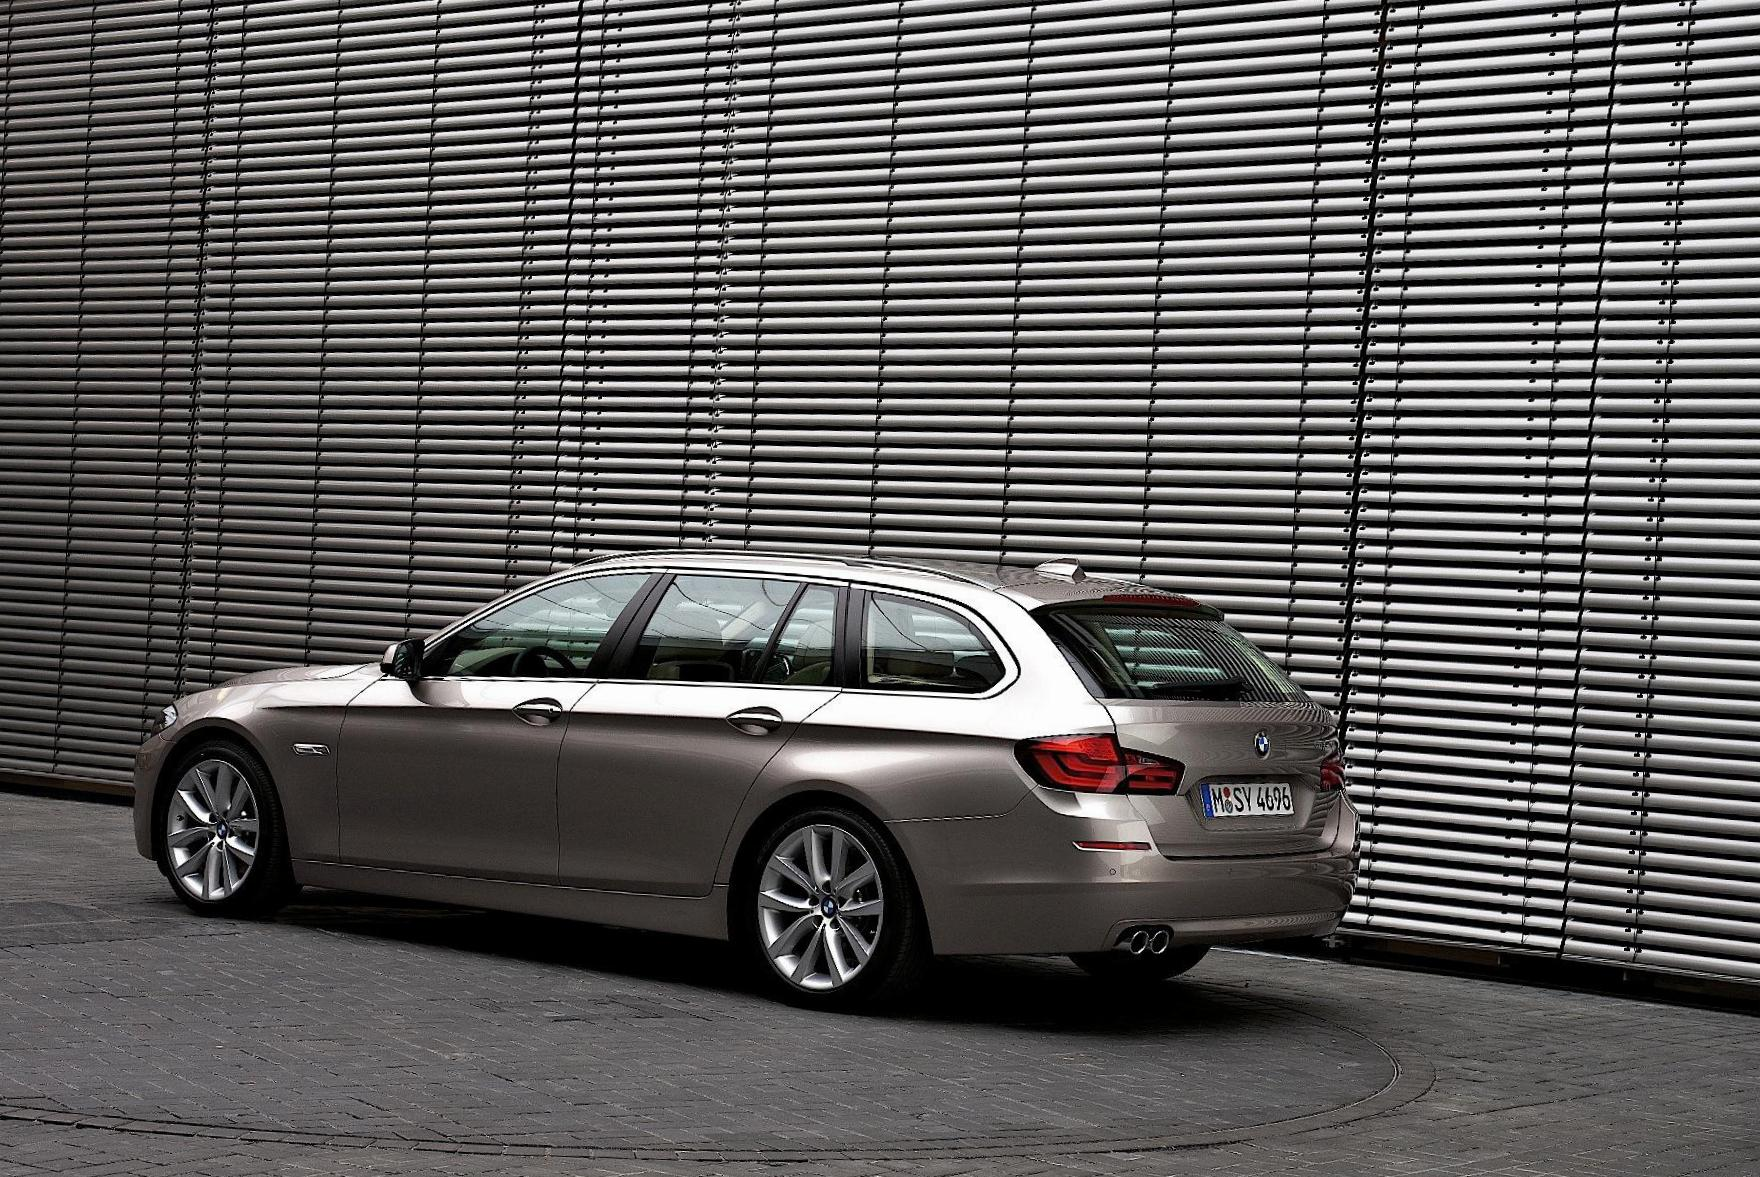 5 Series Touring (F11) BMW used 2007